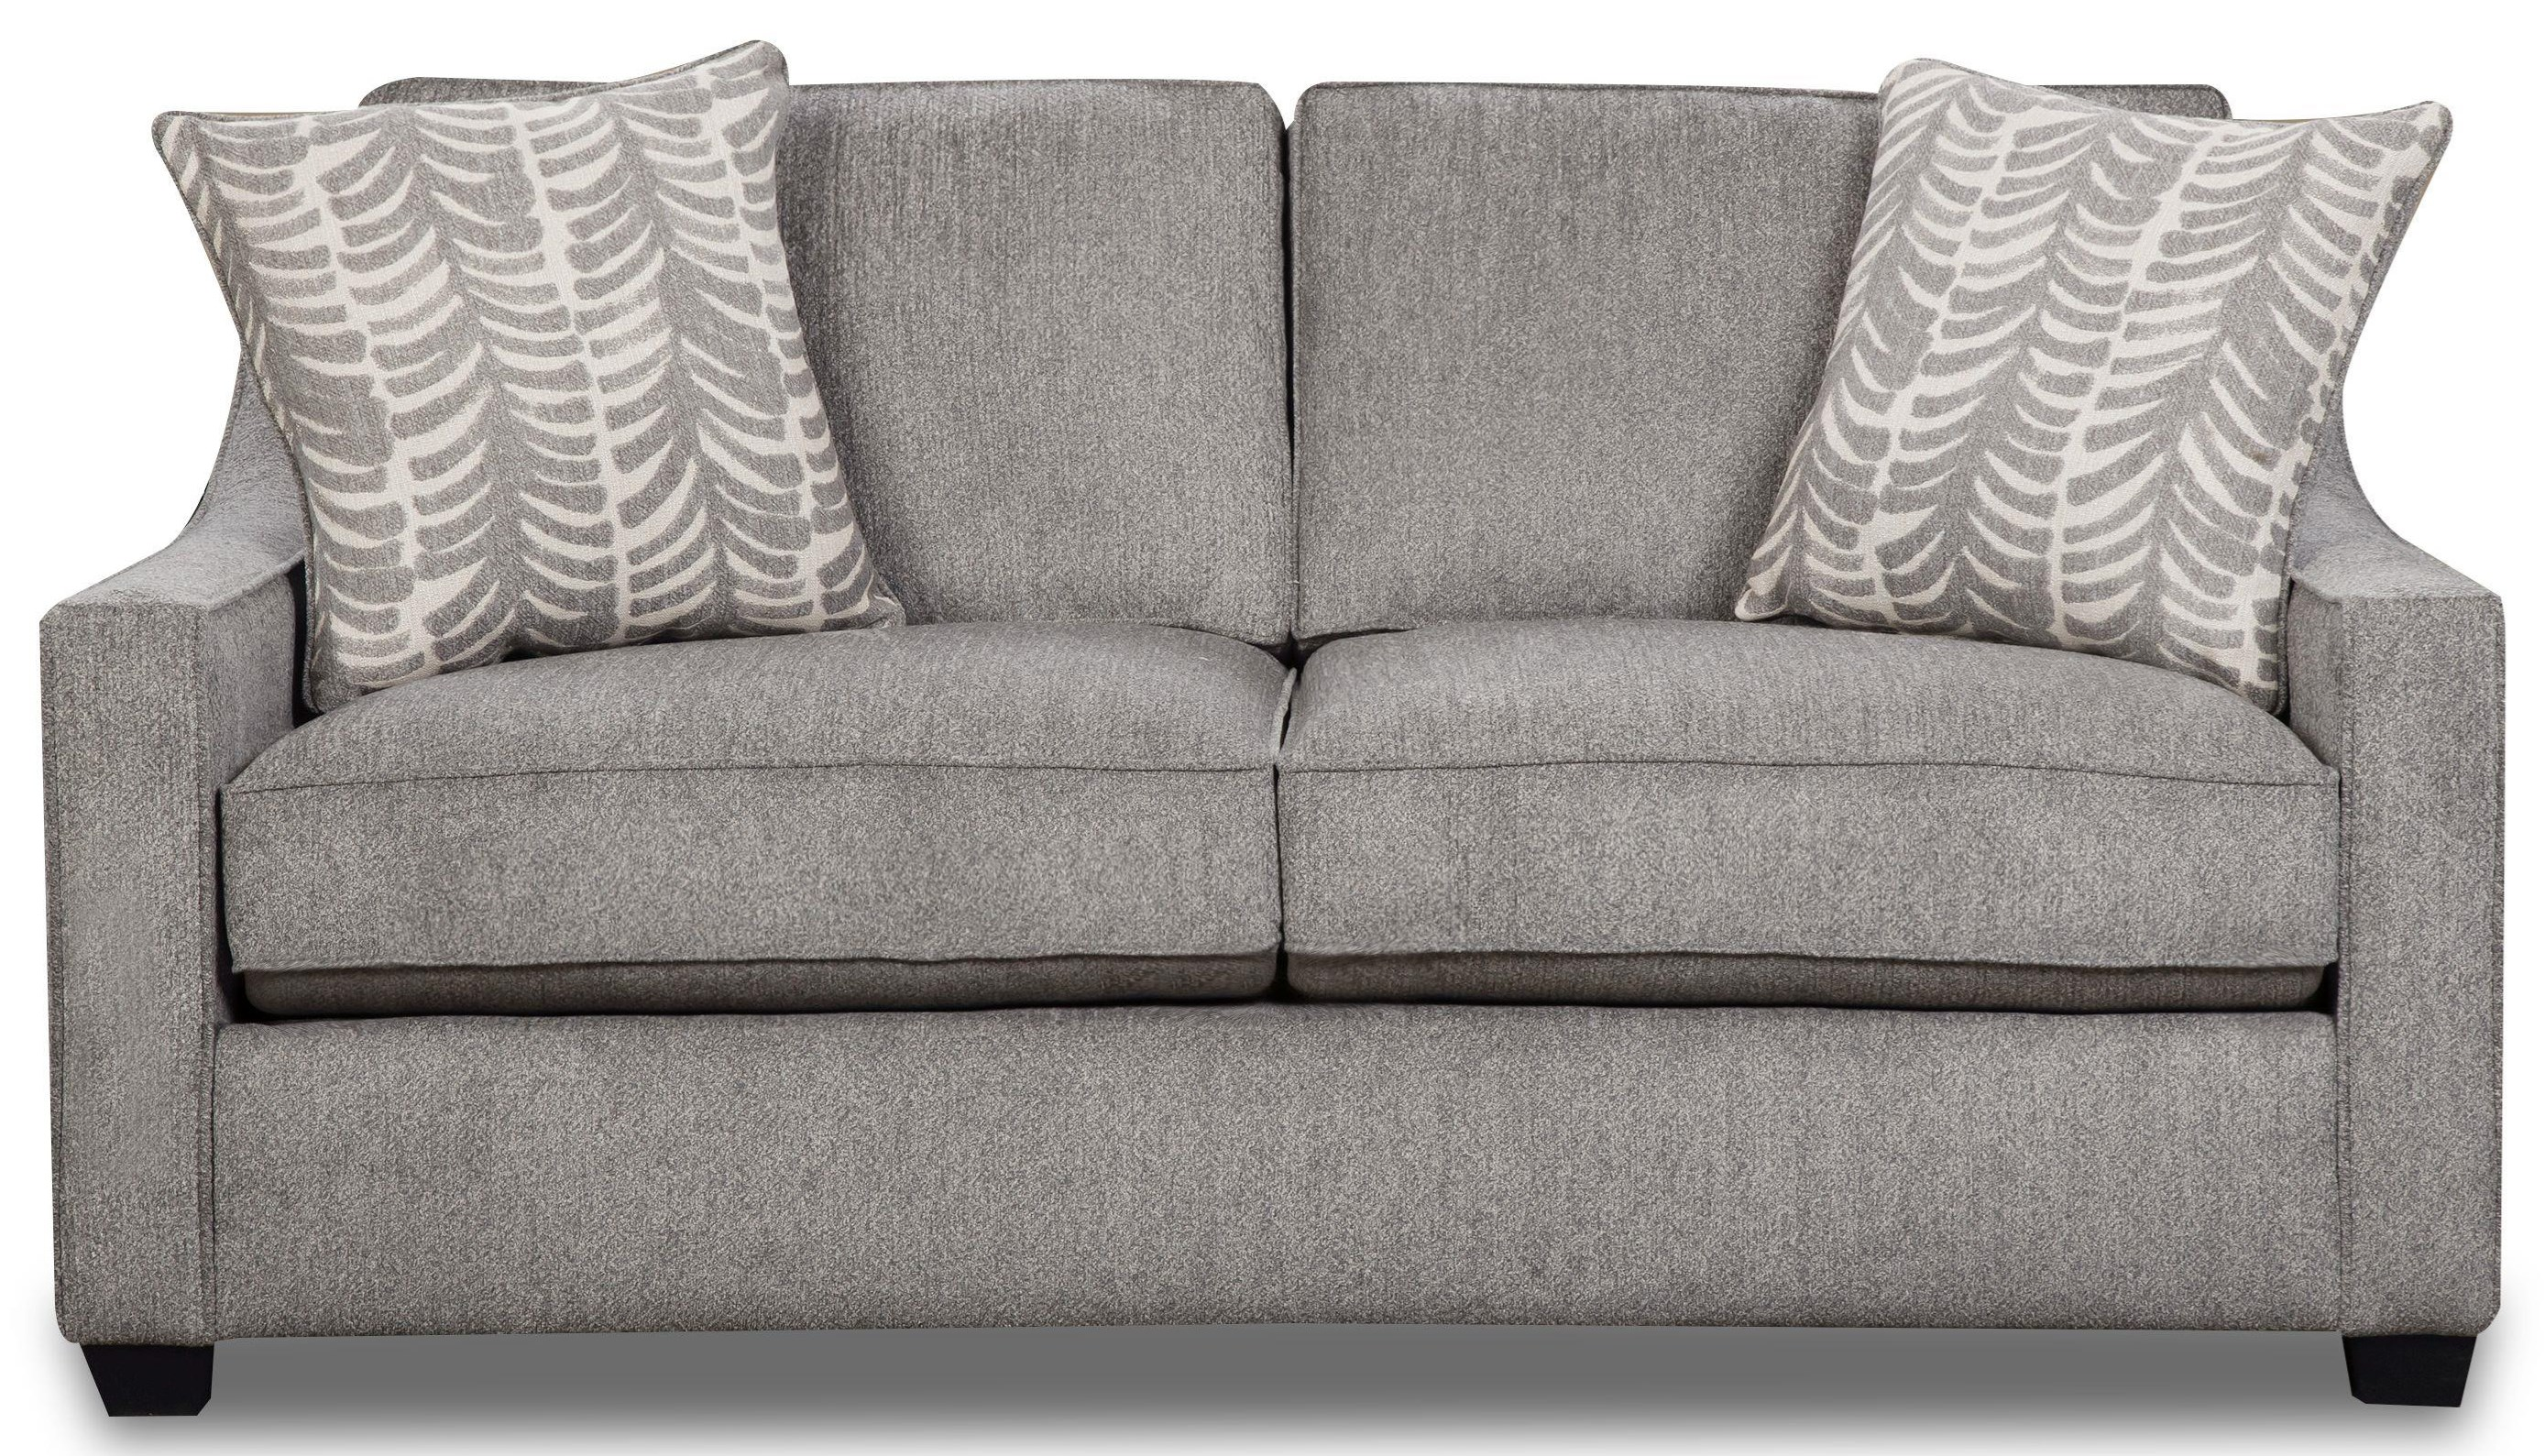 St. Charles Loveseat by Behold Home at Darvin Furniture